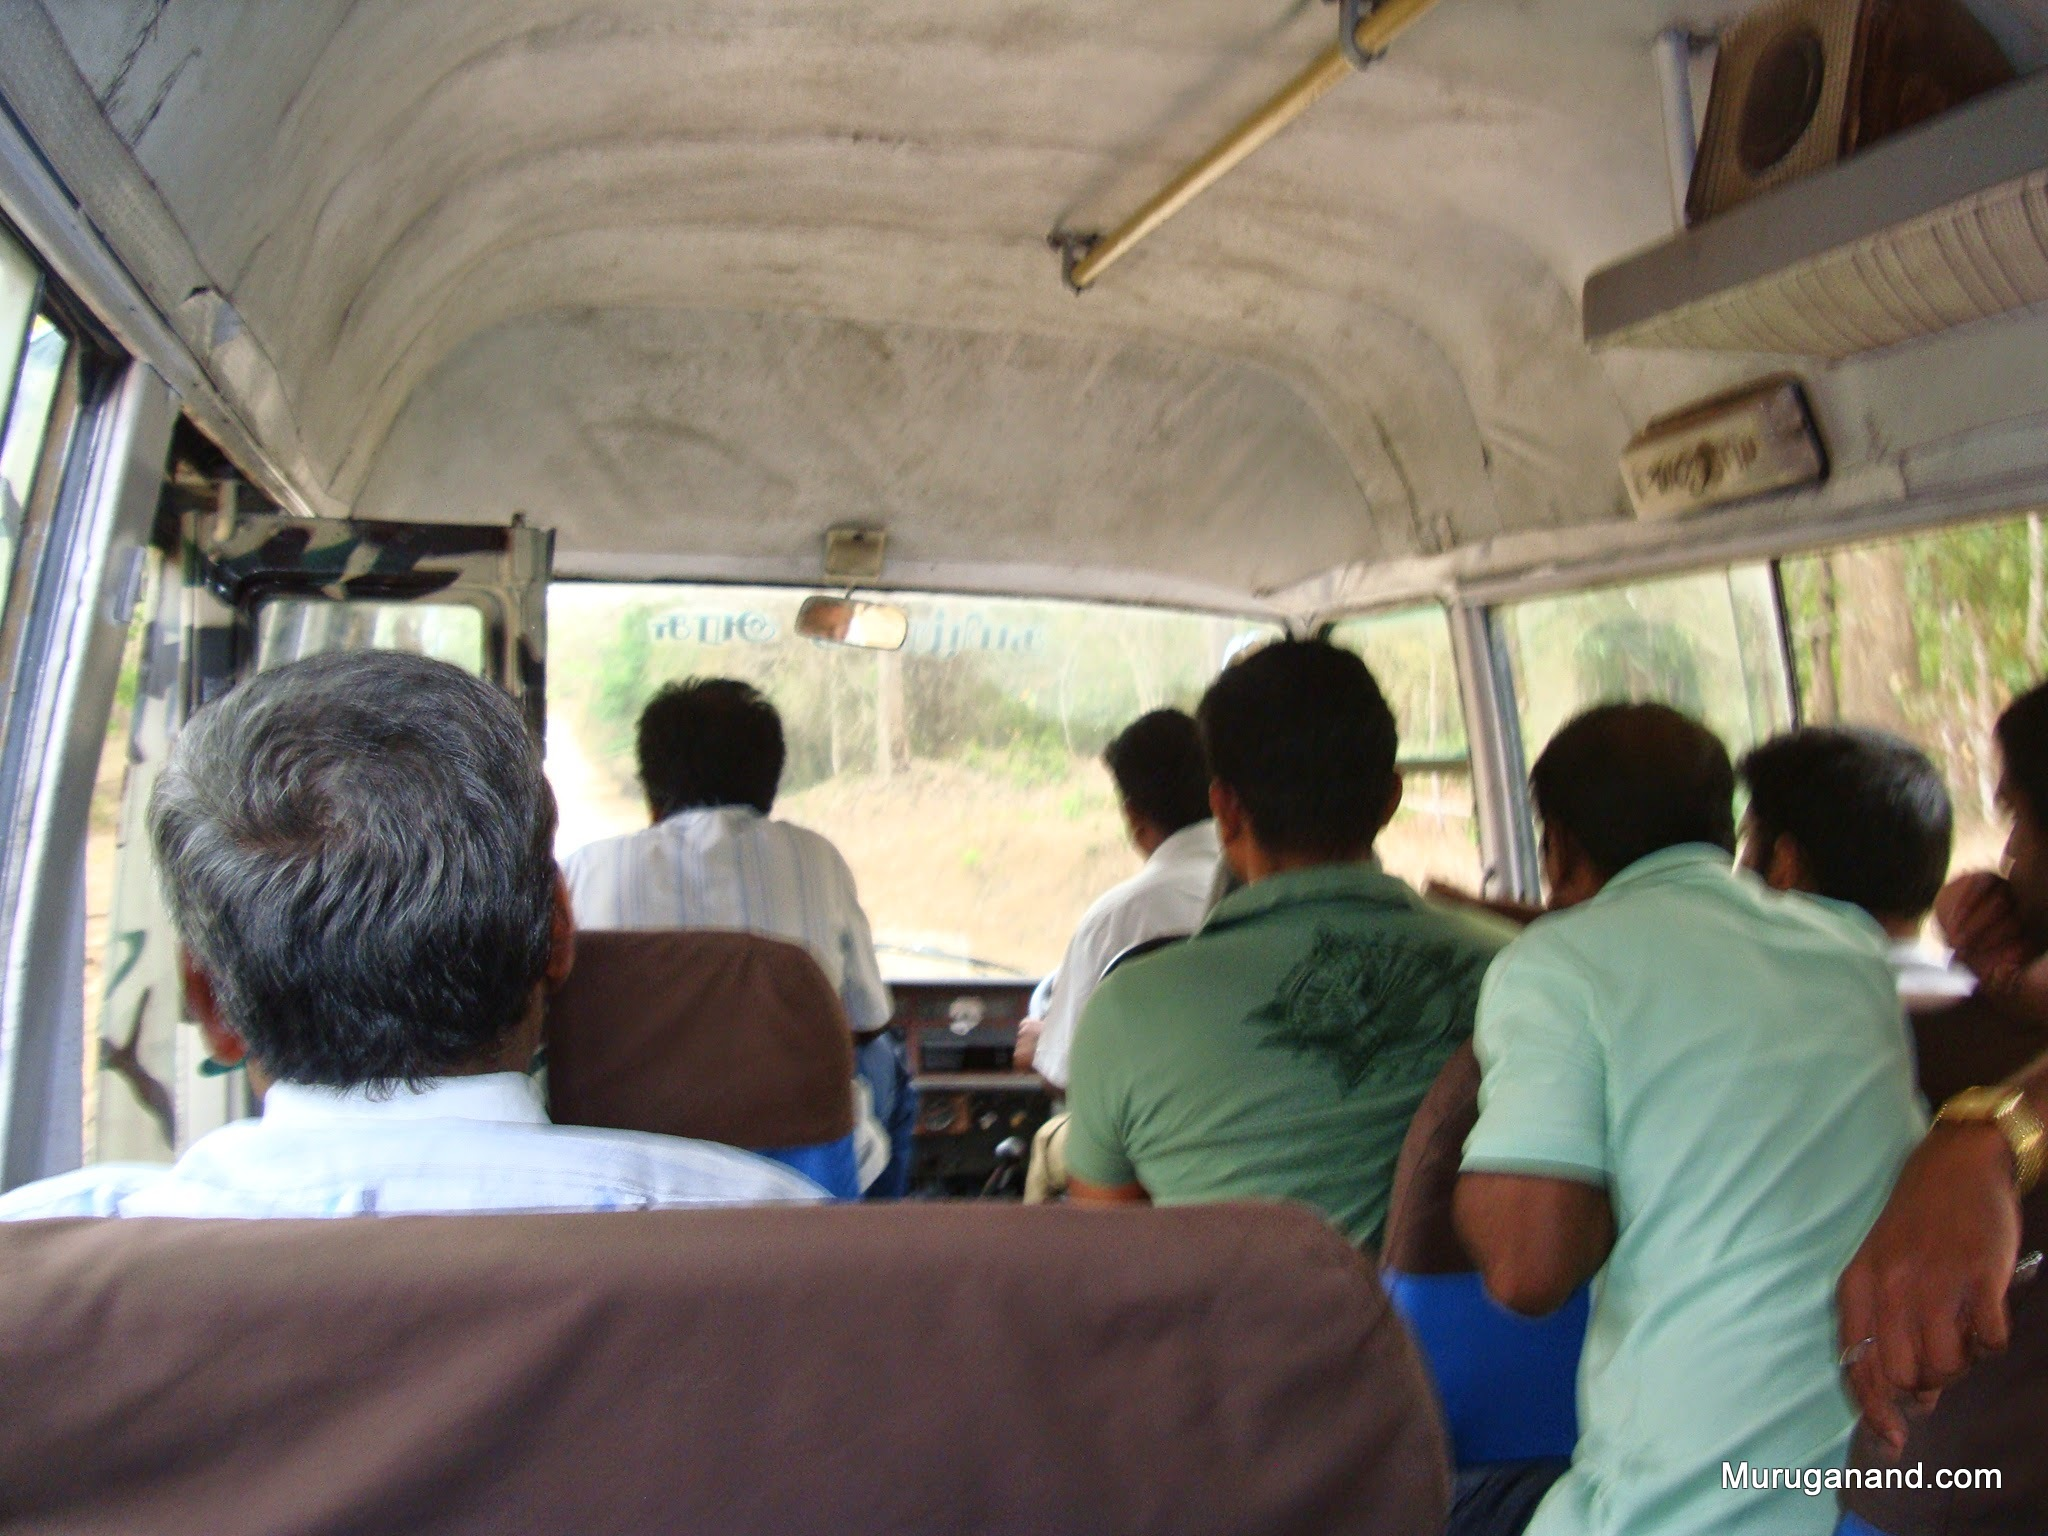 We are on our way to Elephant Feeding Camp Area